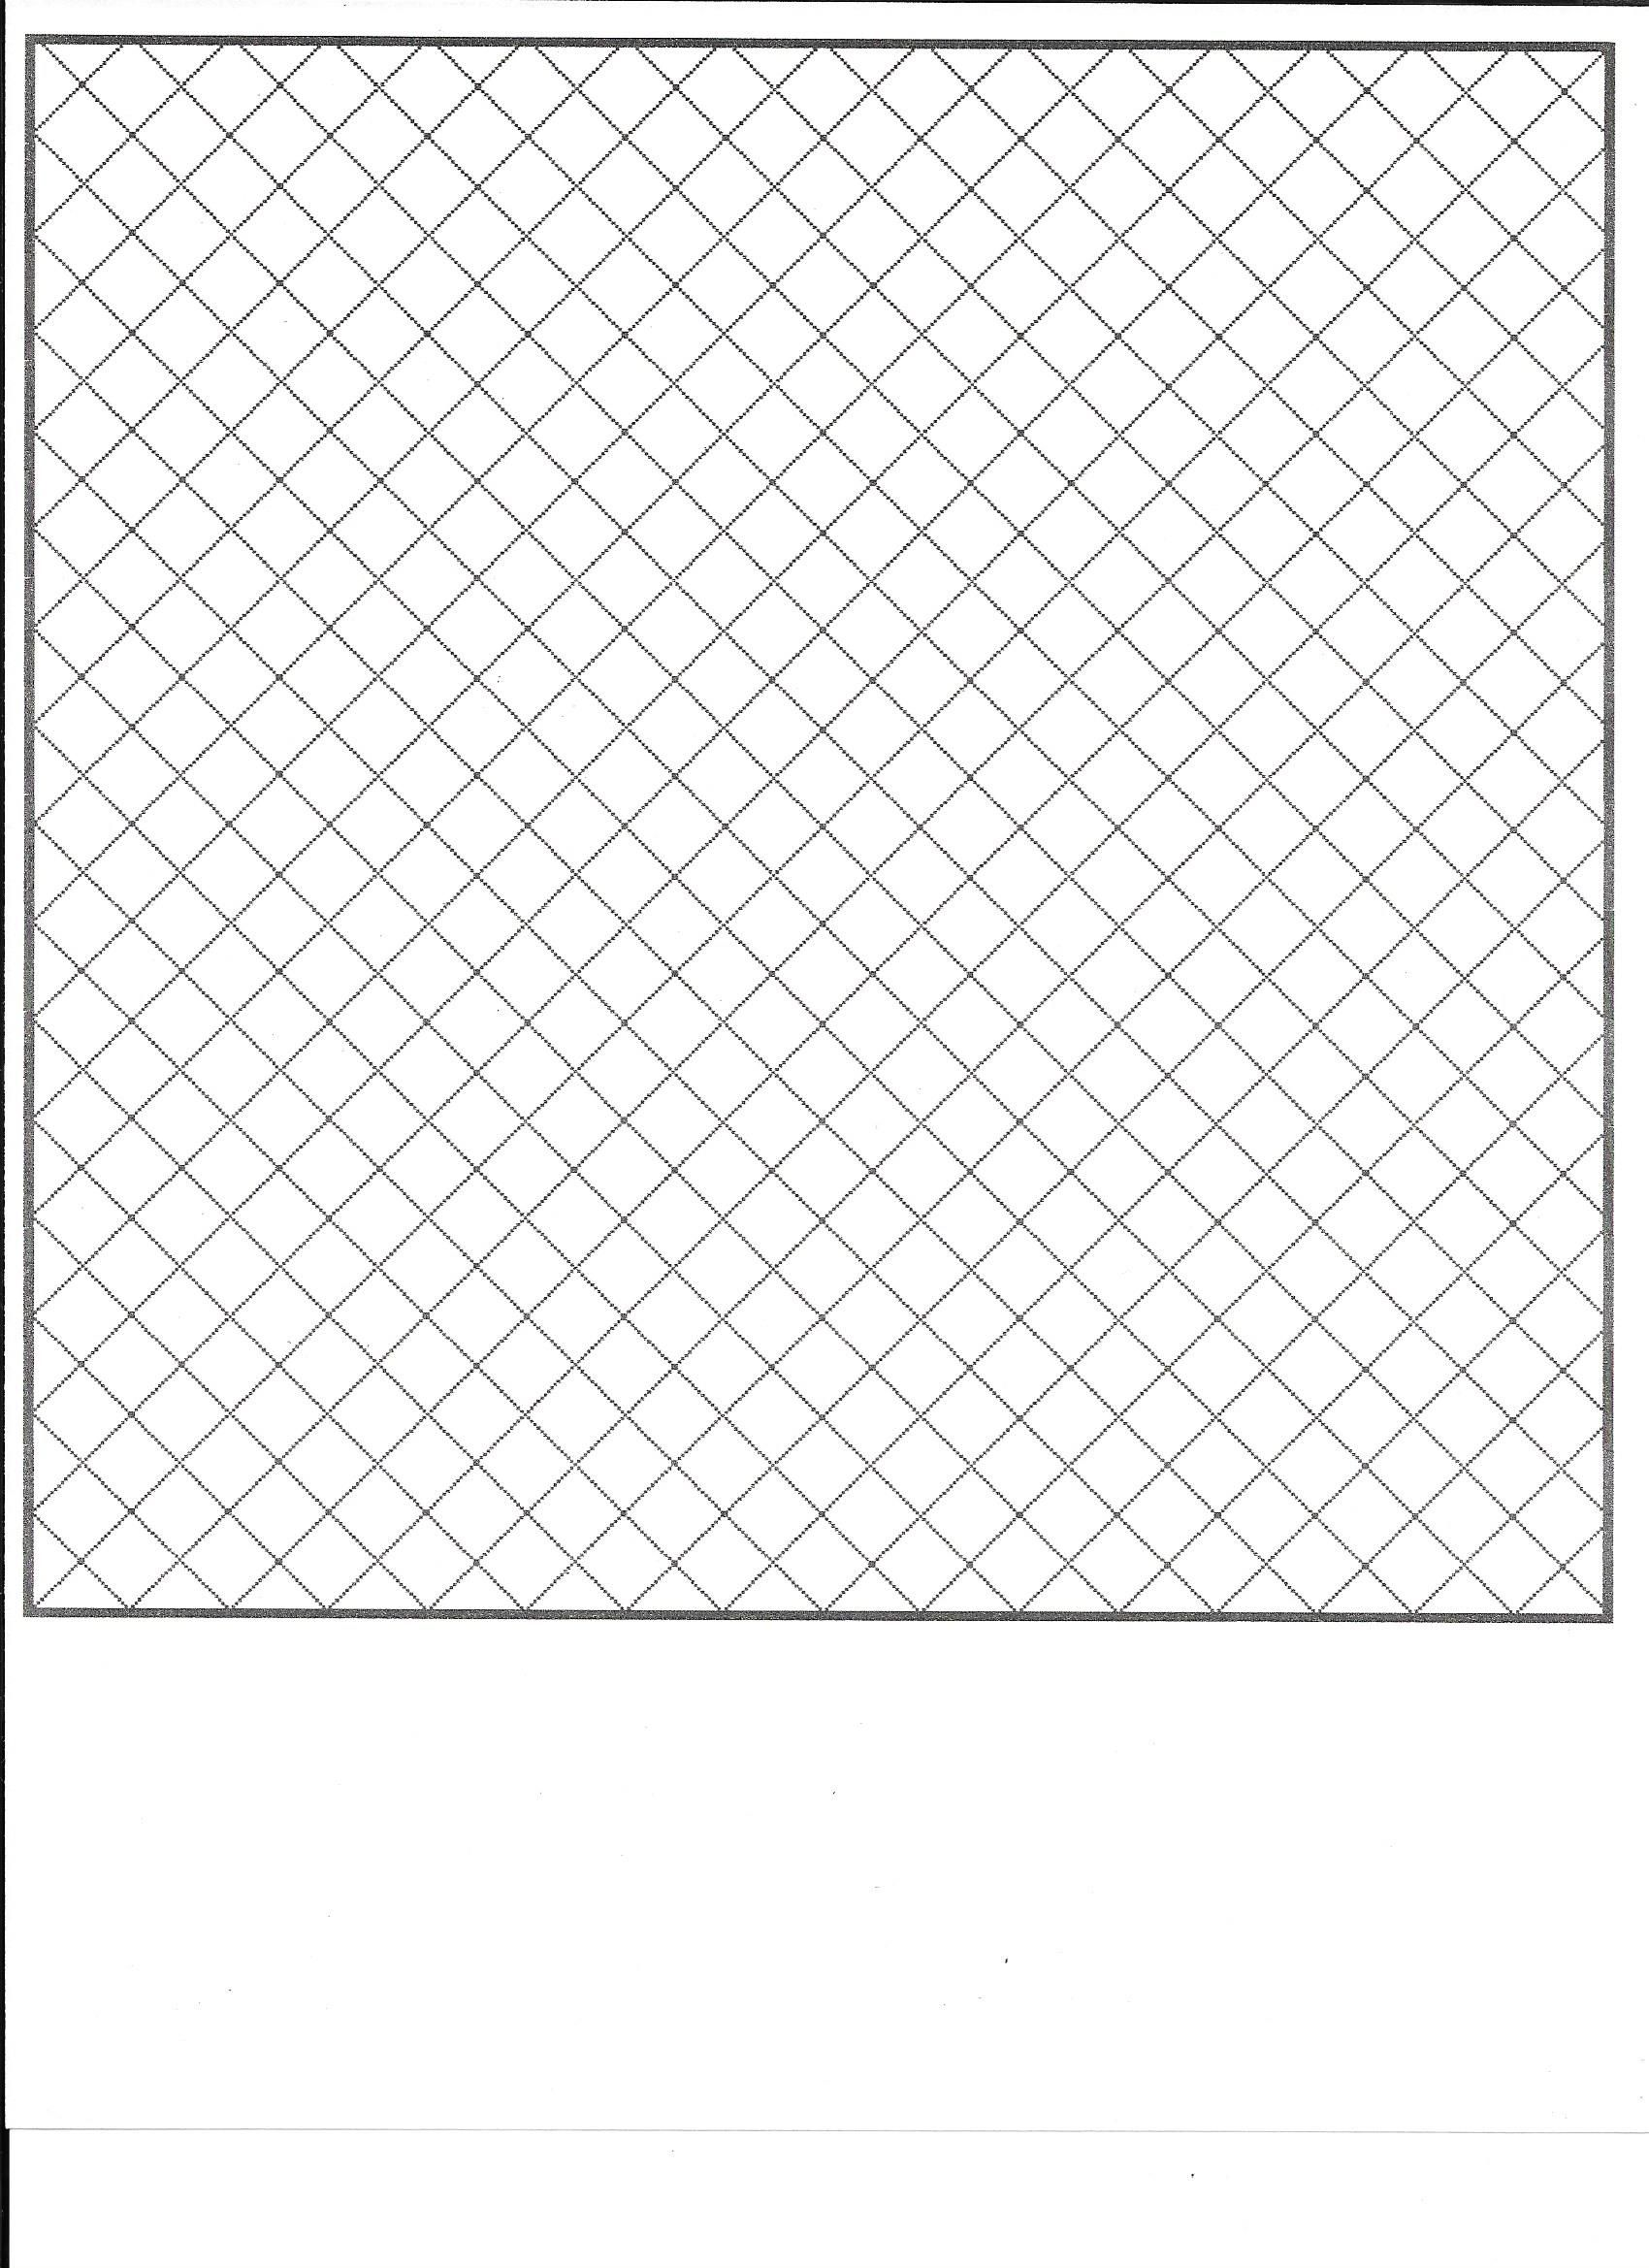 99 Large Graph Paper Template 9 Free Documents